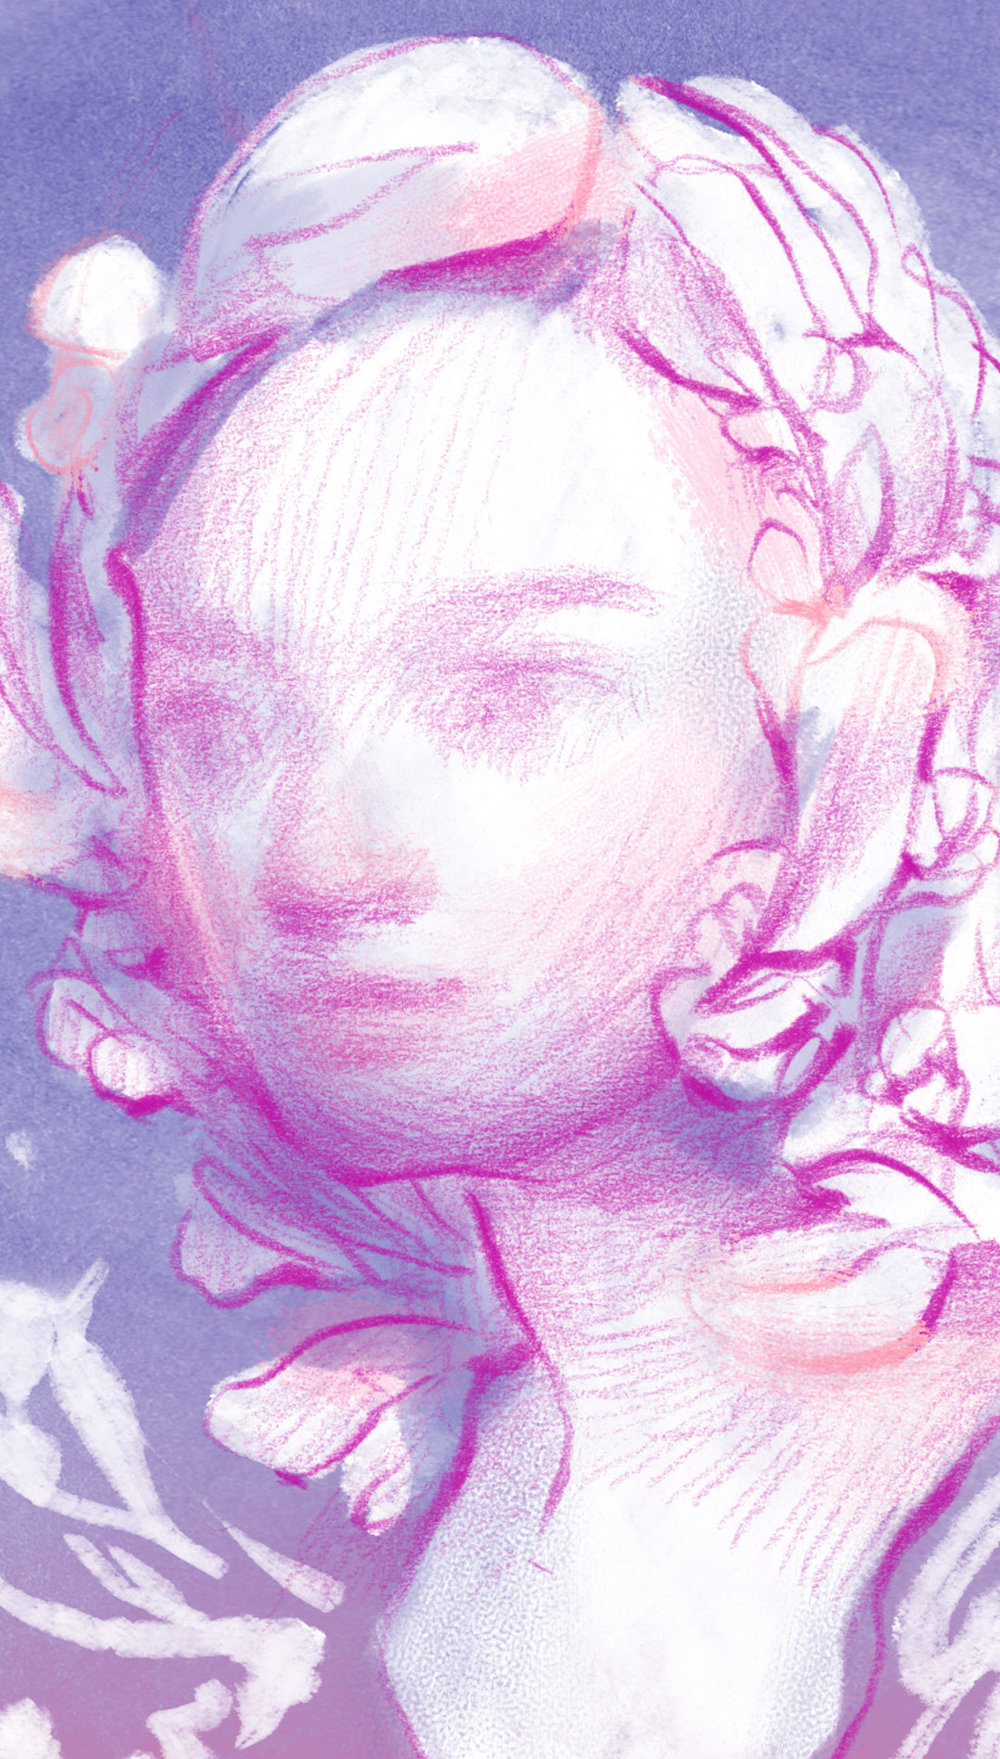 Detail of purple portrait drawing of girl with flower crown